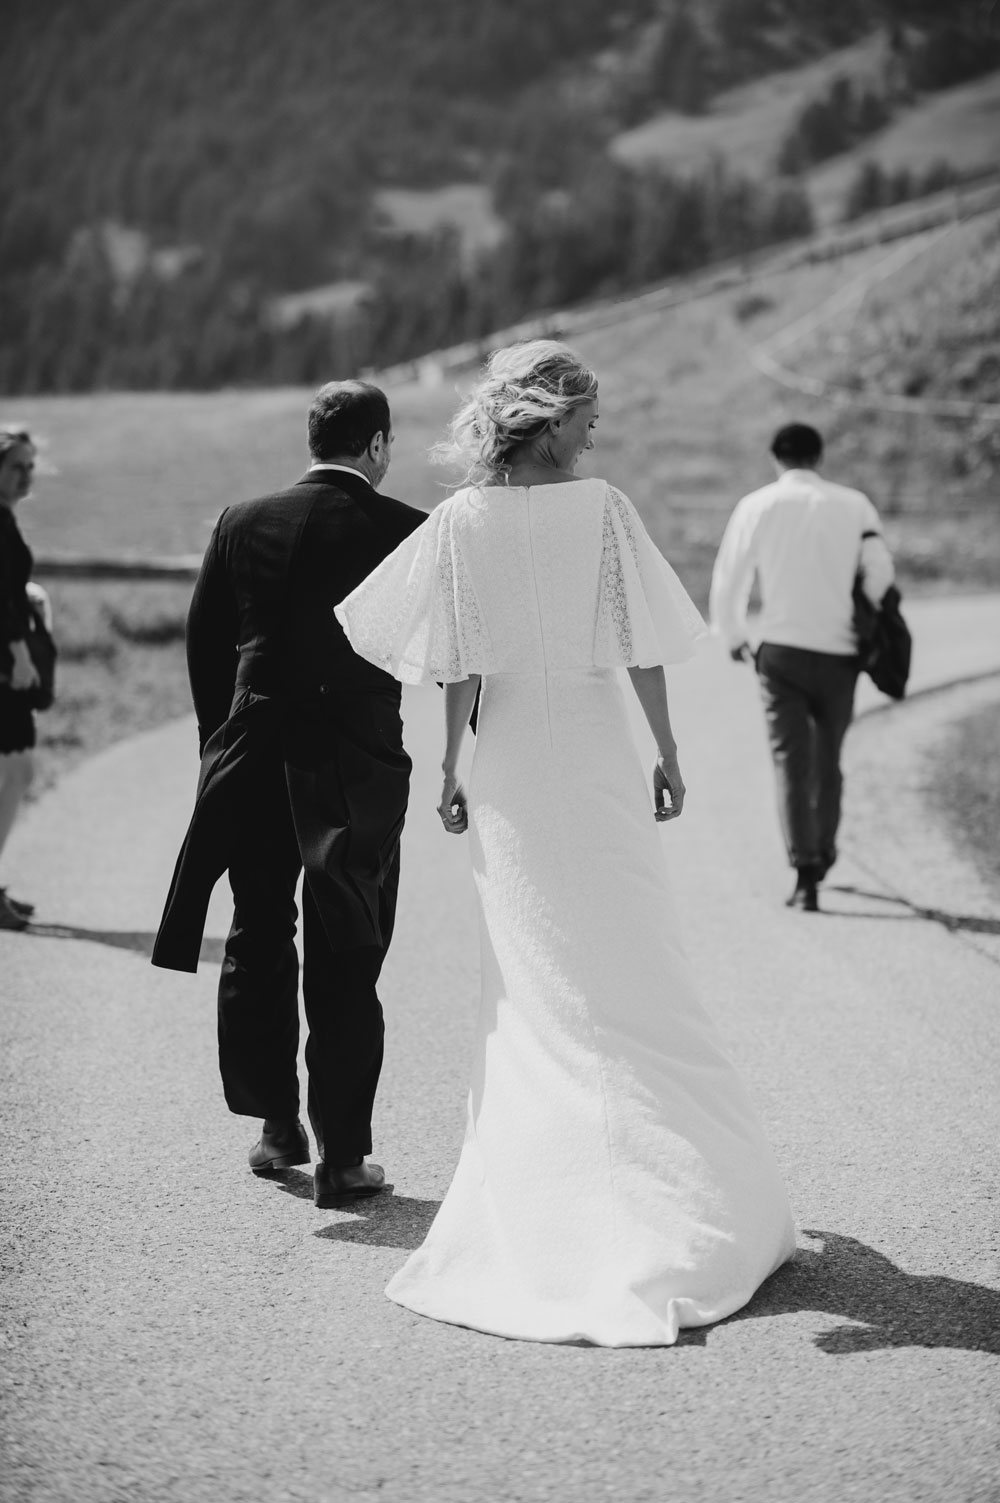 wedding_photographer_celerina_052.jpg